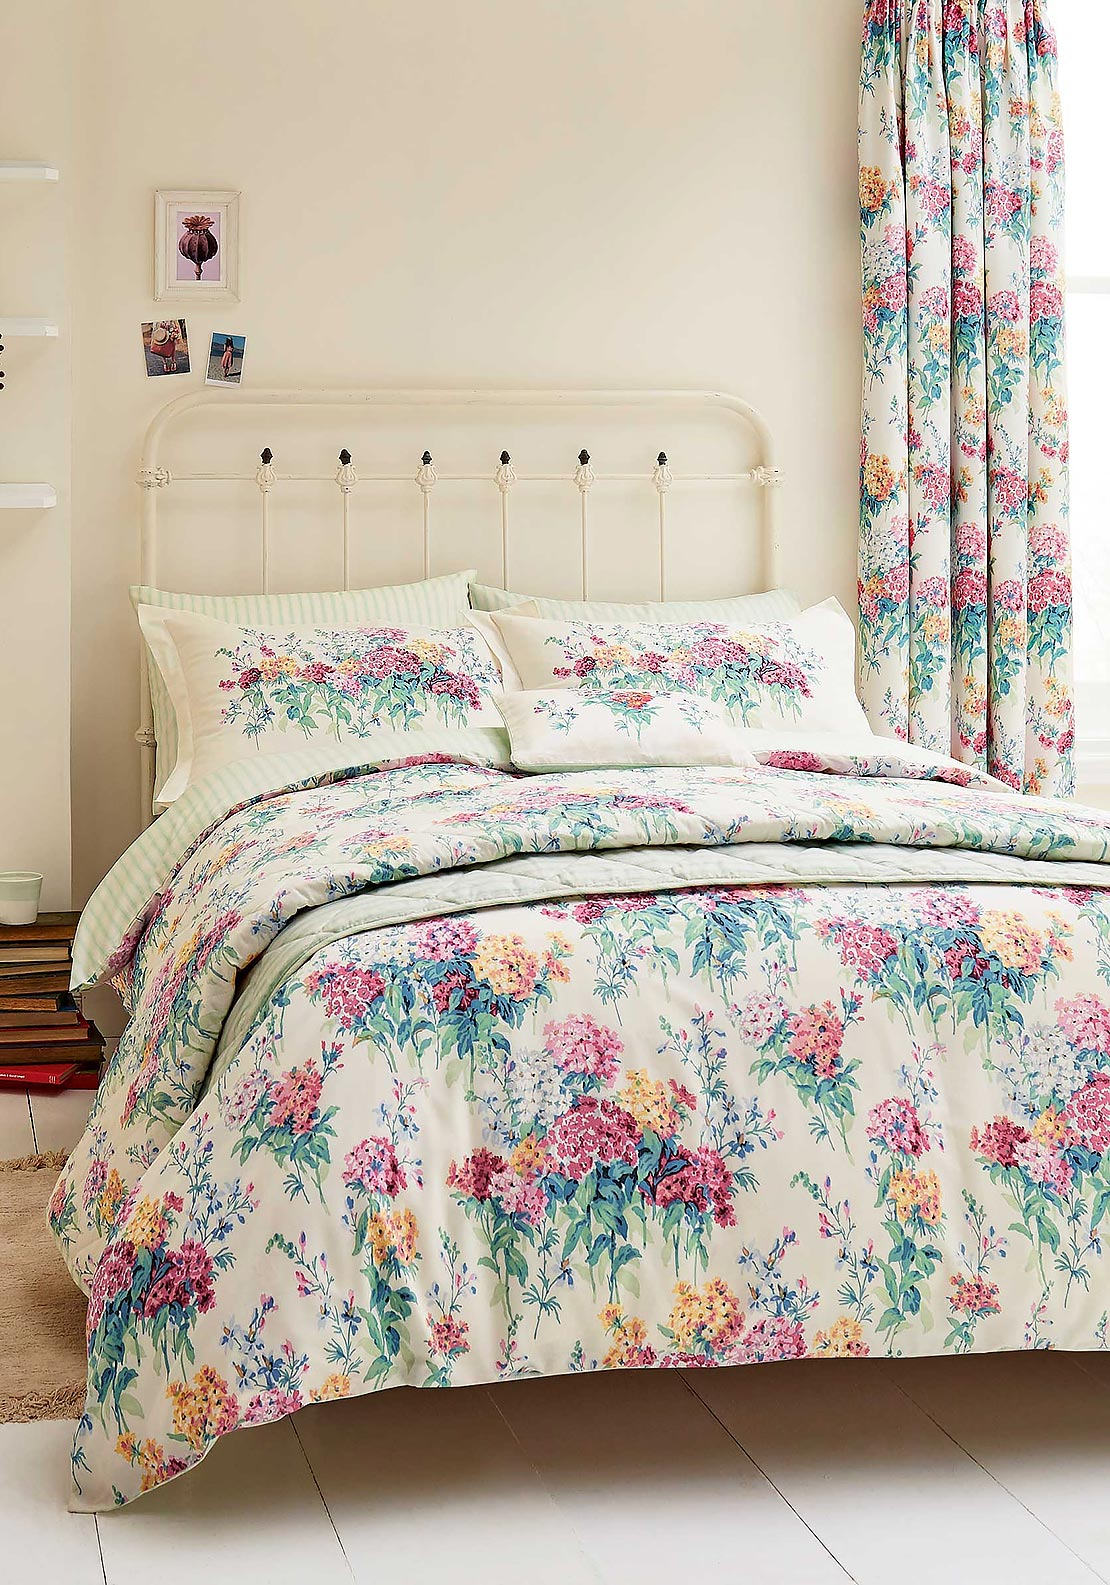 Sanderson Sweet Williams Floral Print Duvet Cover Set, Multi-Coloured